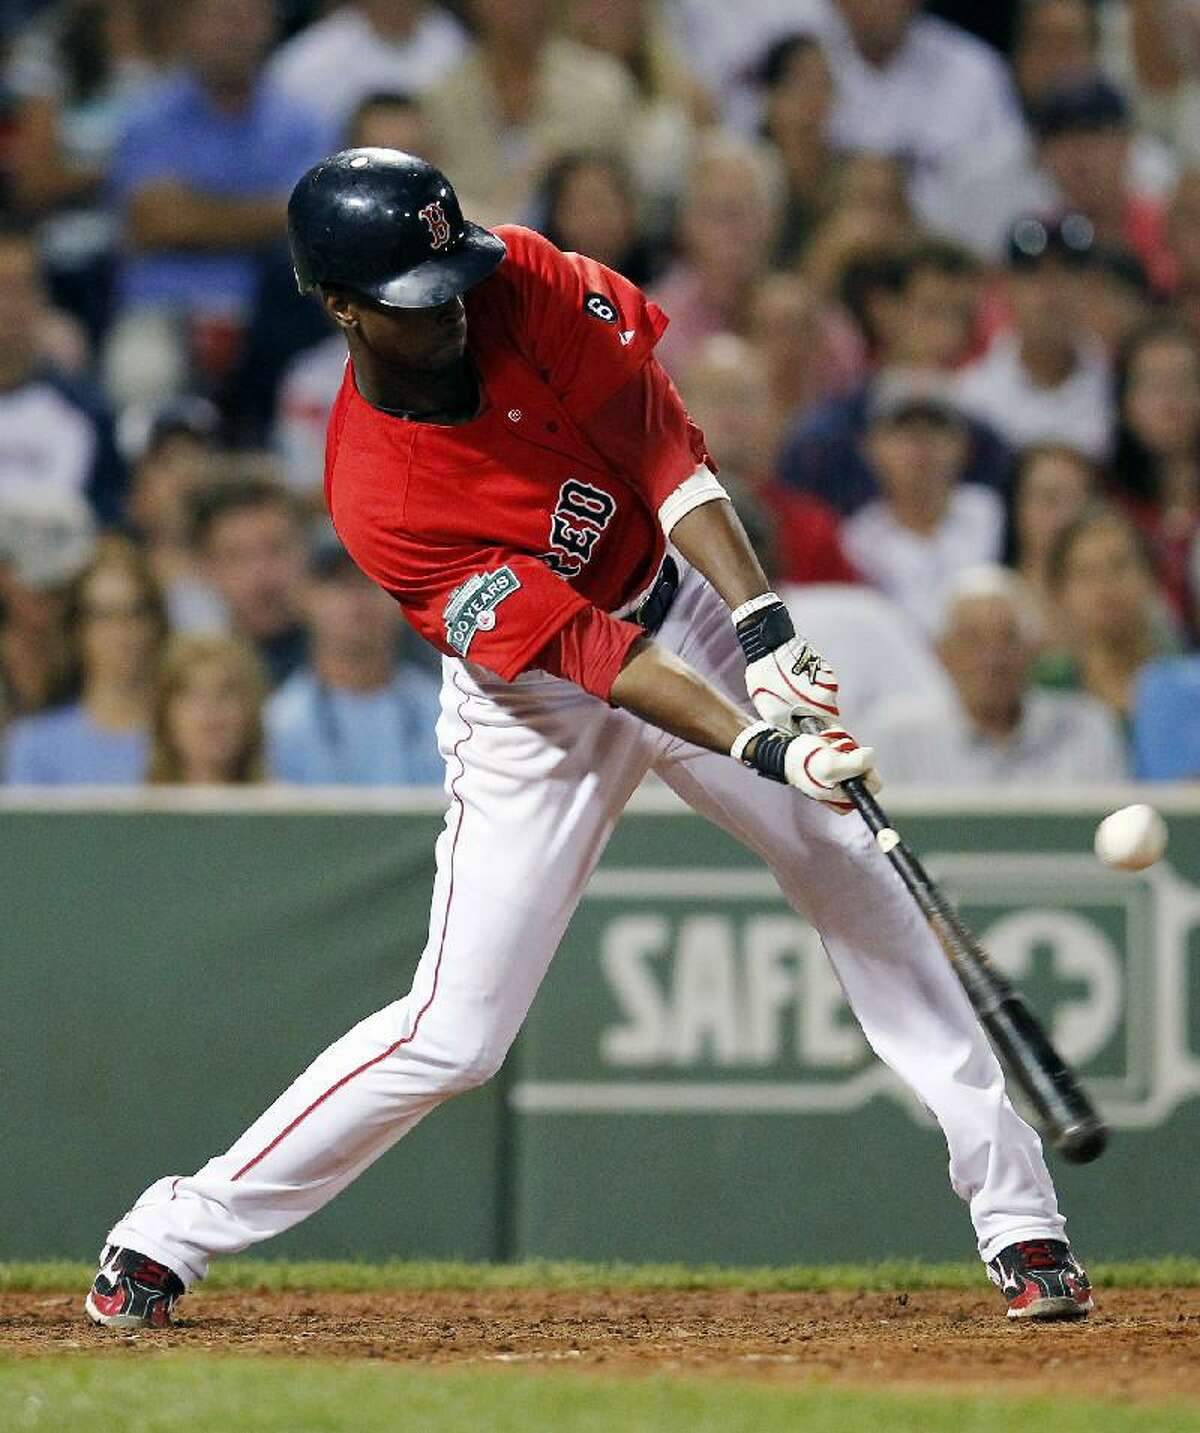 ASSOCIATED PRESS Boston Red Sox's Pedro Ciriaco hits a two-run double in the seventh inning of Friday night's game against the Kansas City Royals in Boston. The Red Sox won 4-3.